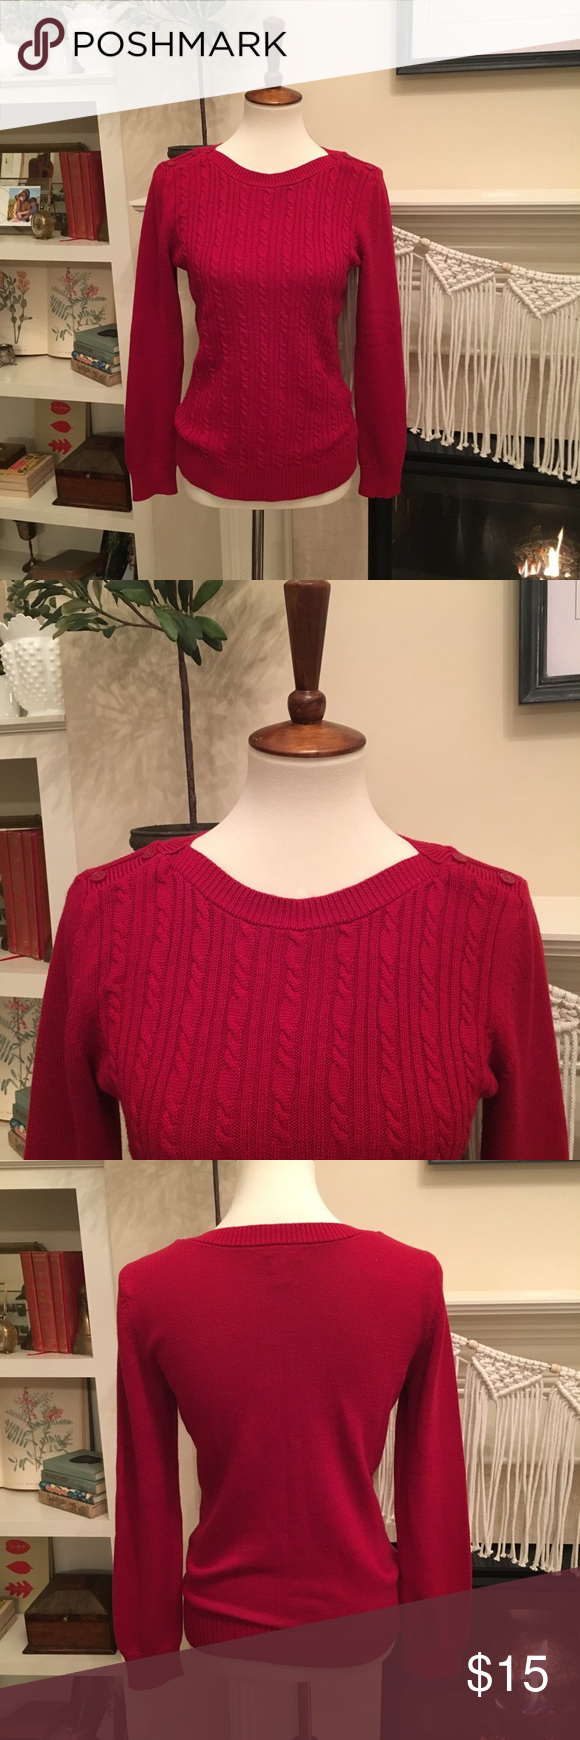 Banana Republic Factory Red Cable knit Sweater M Red